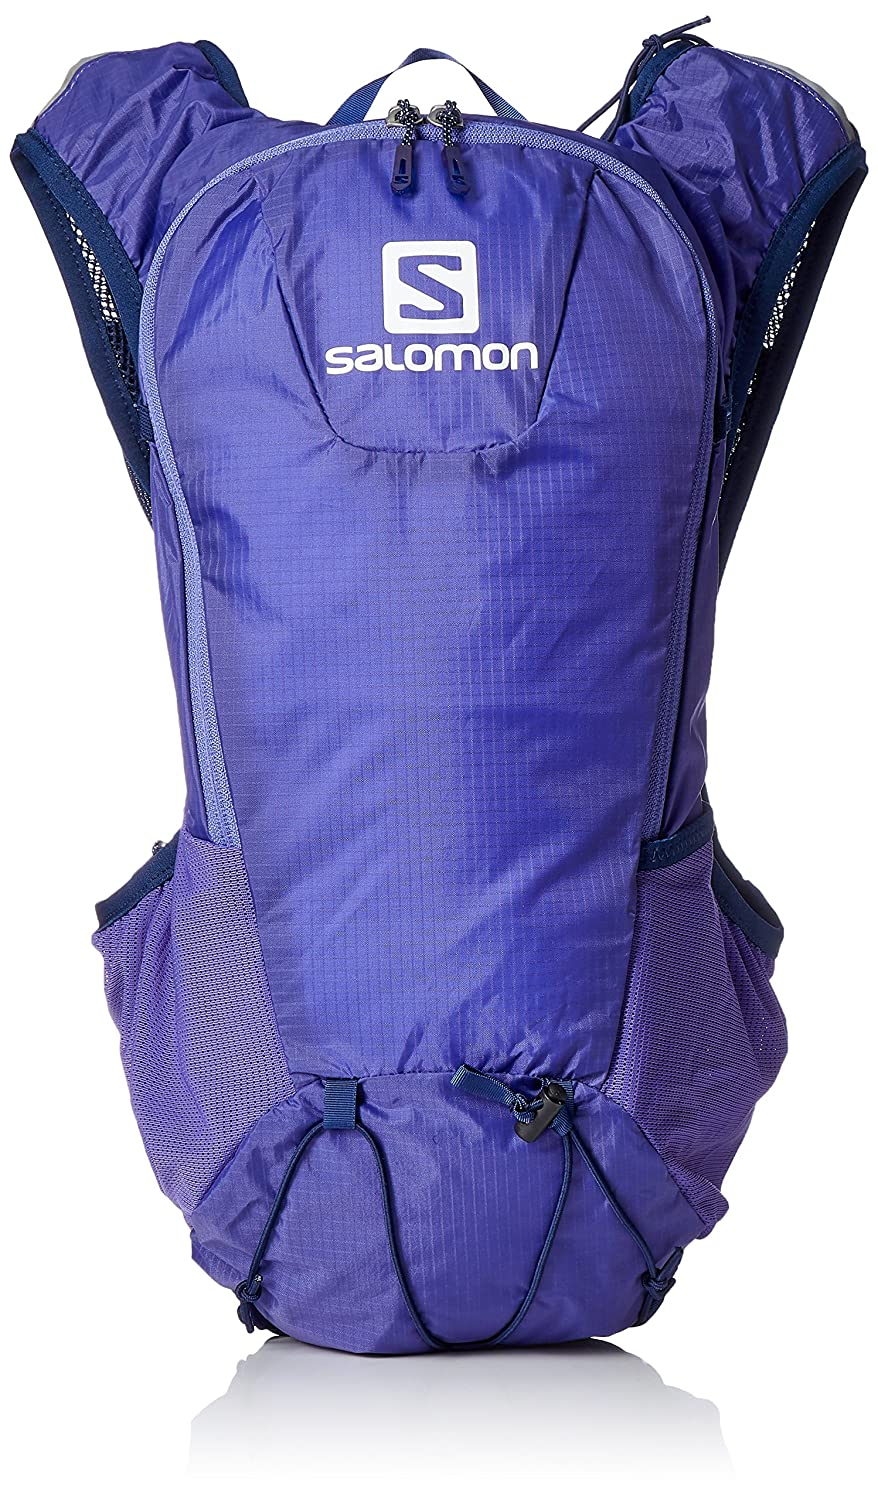 Salomon Bag Skin 10 Pro 10 Skin Set 7245ed